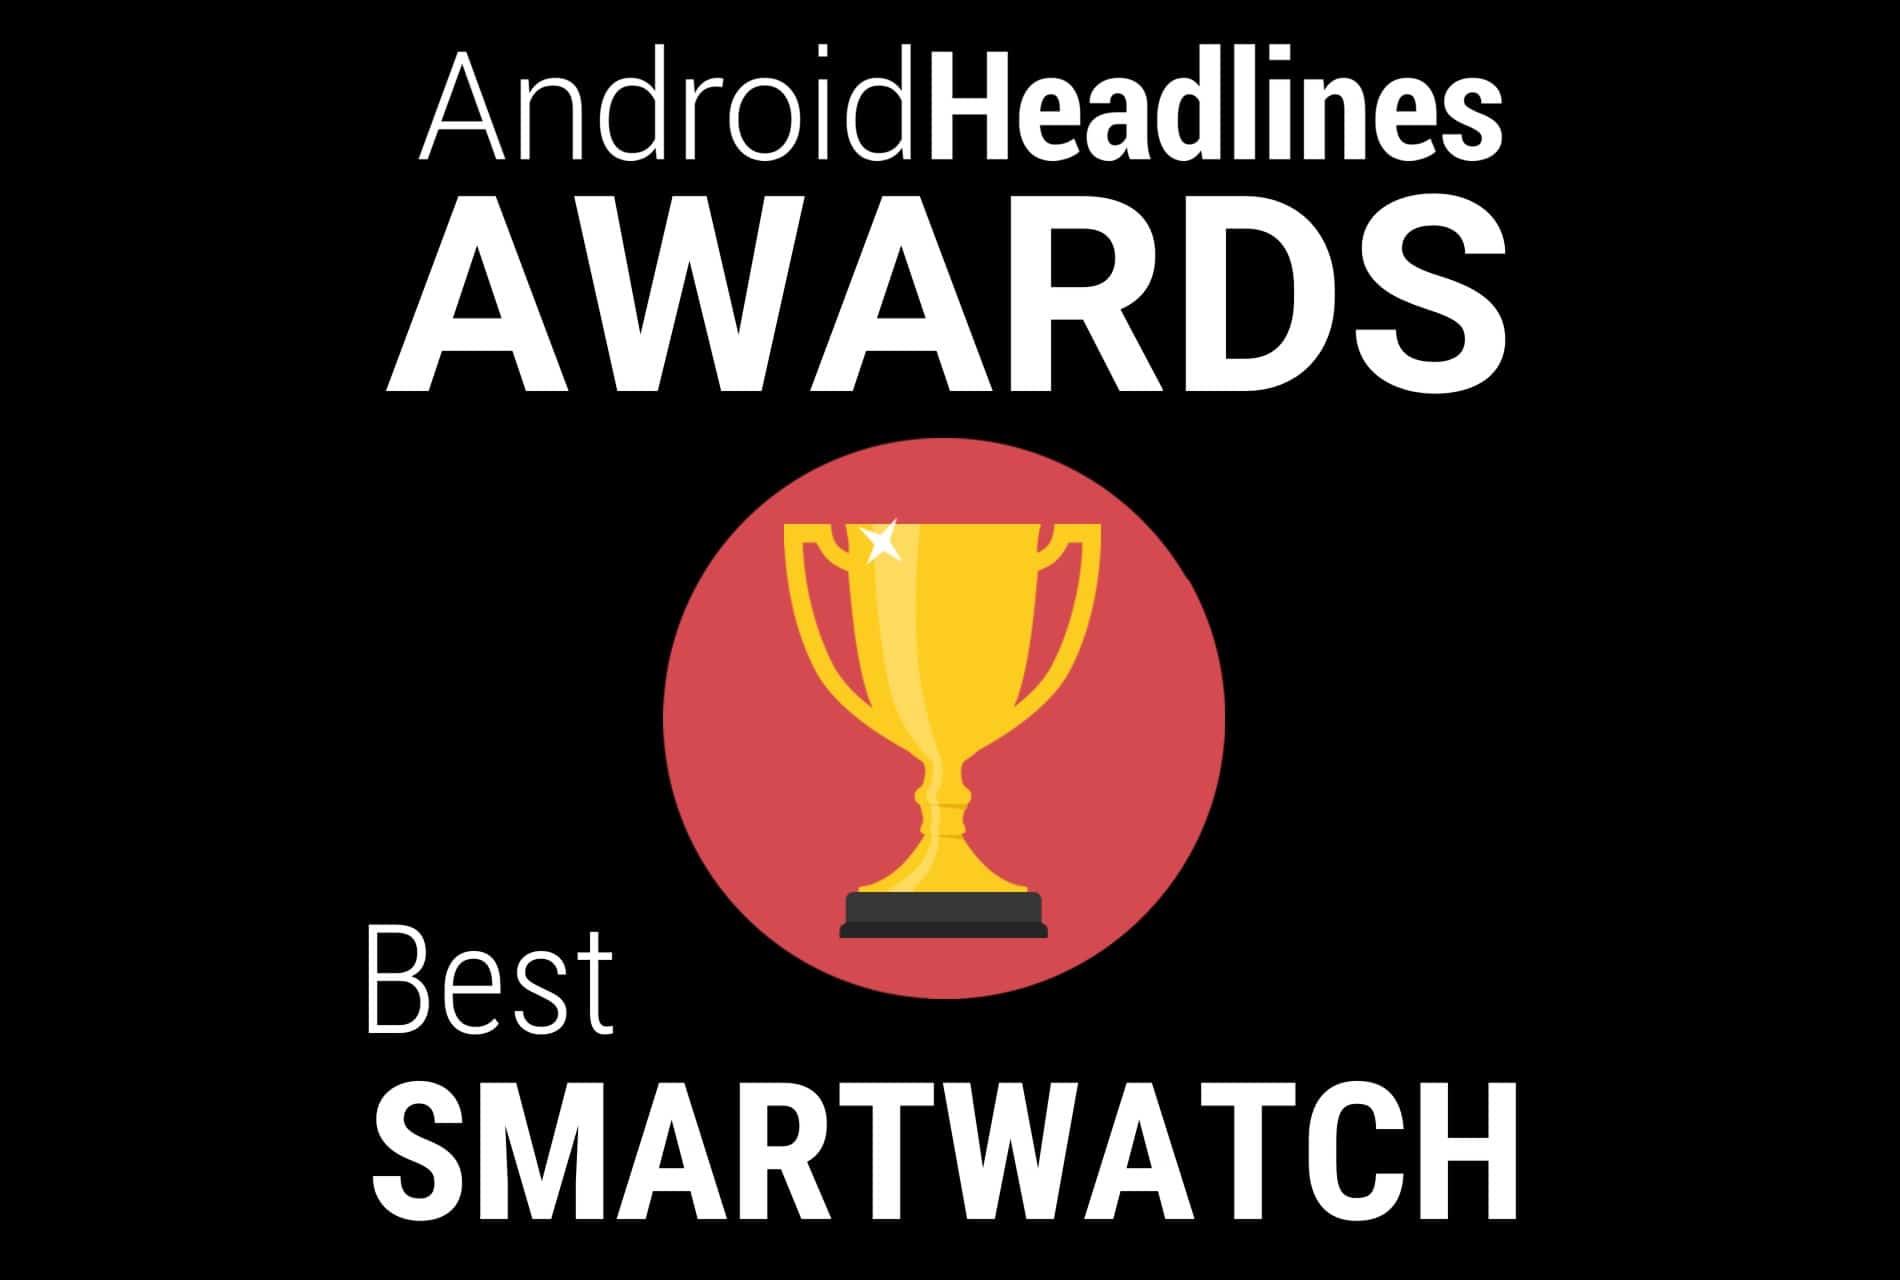 AH Awards Best Smartwatch